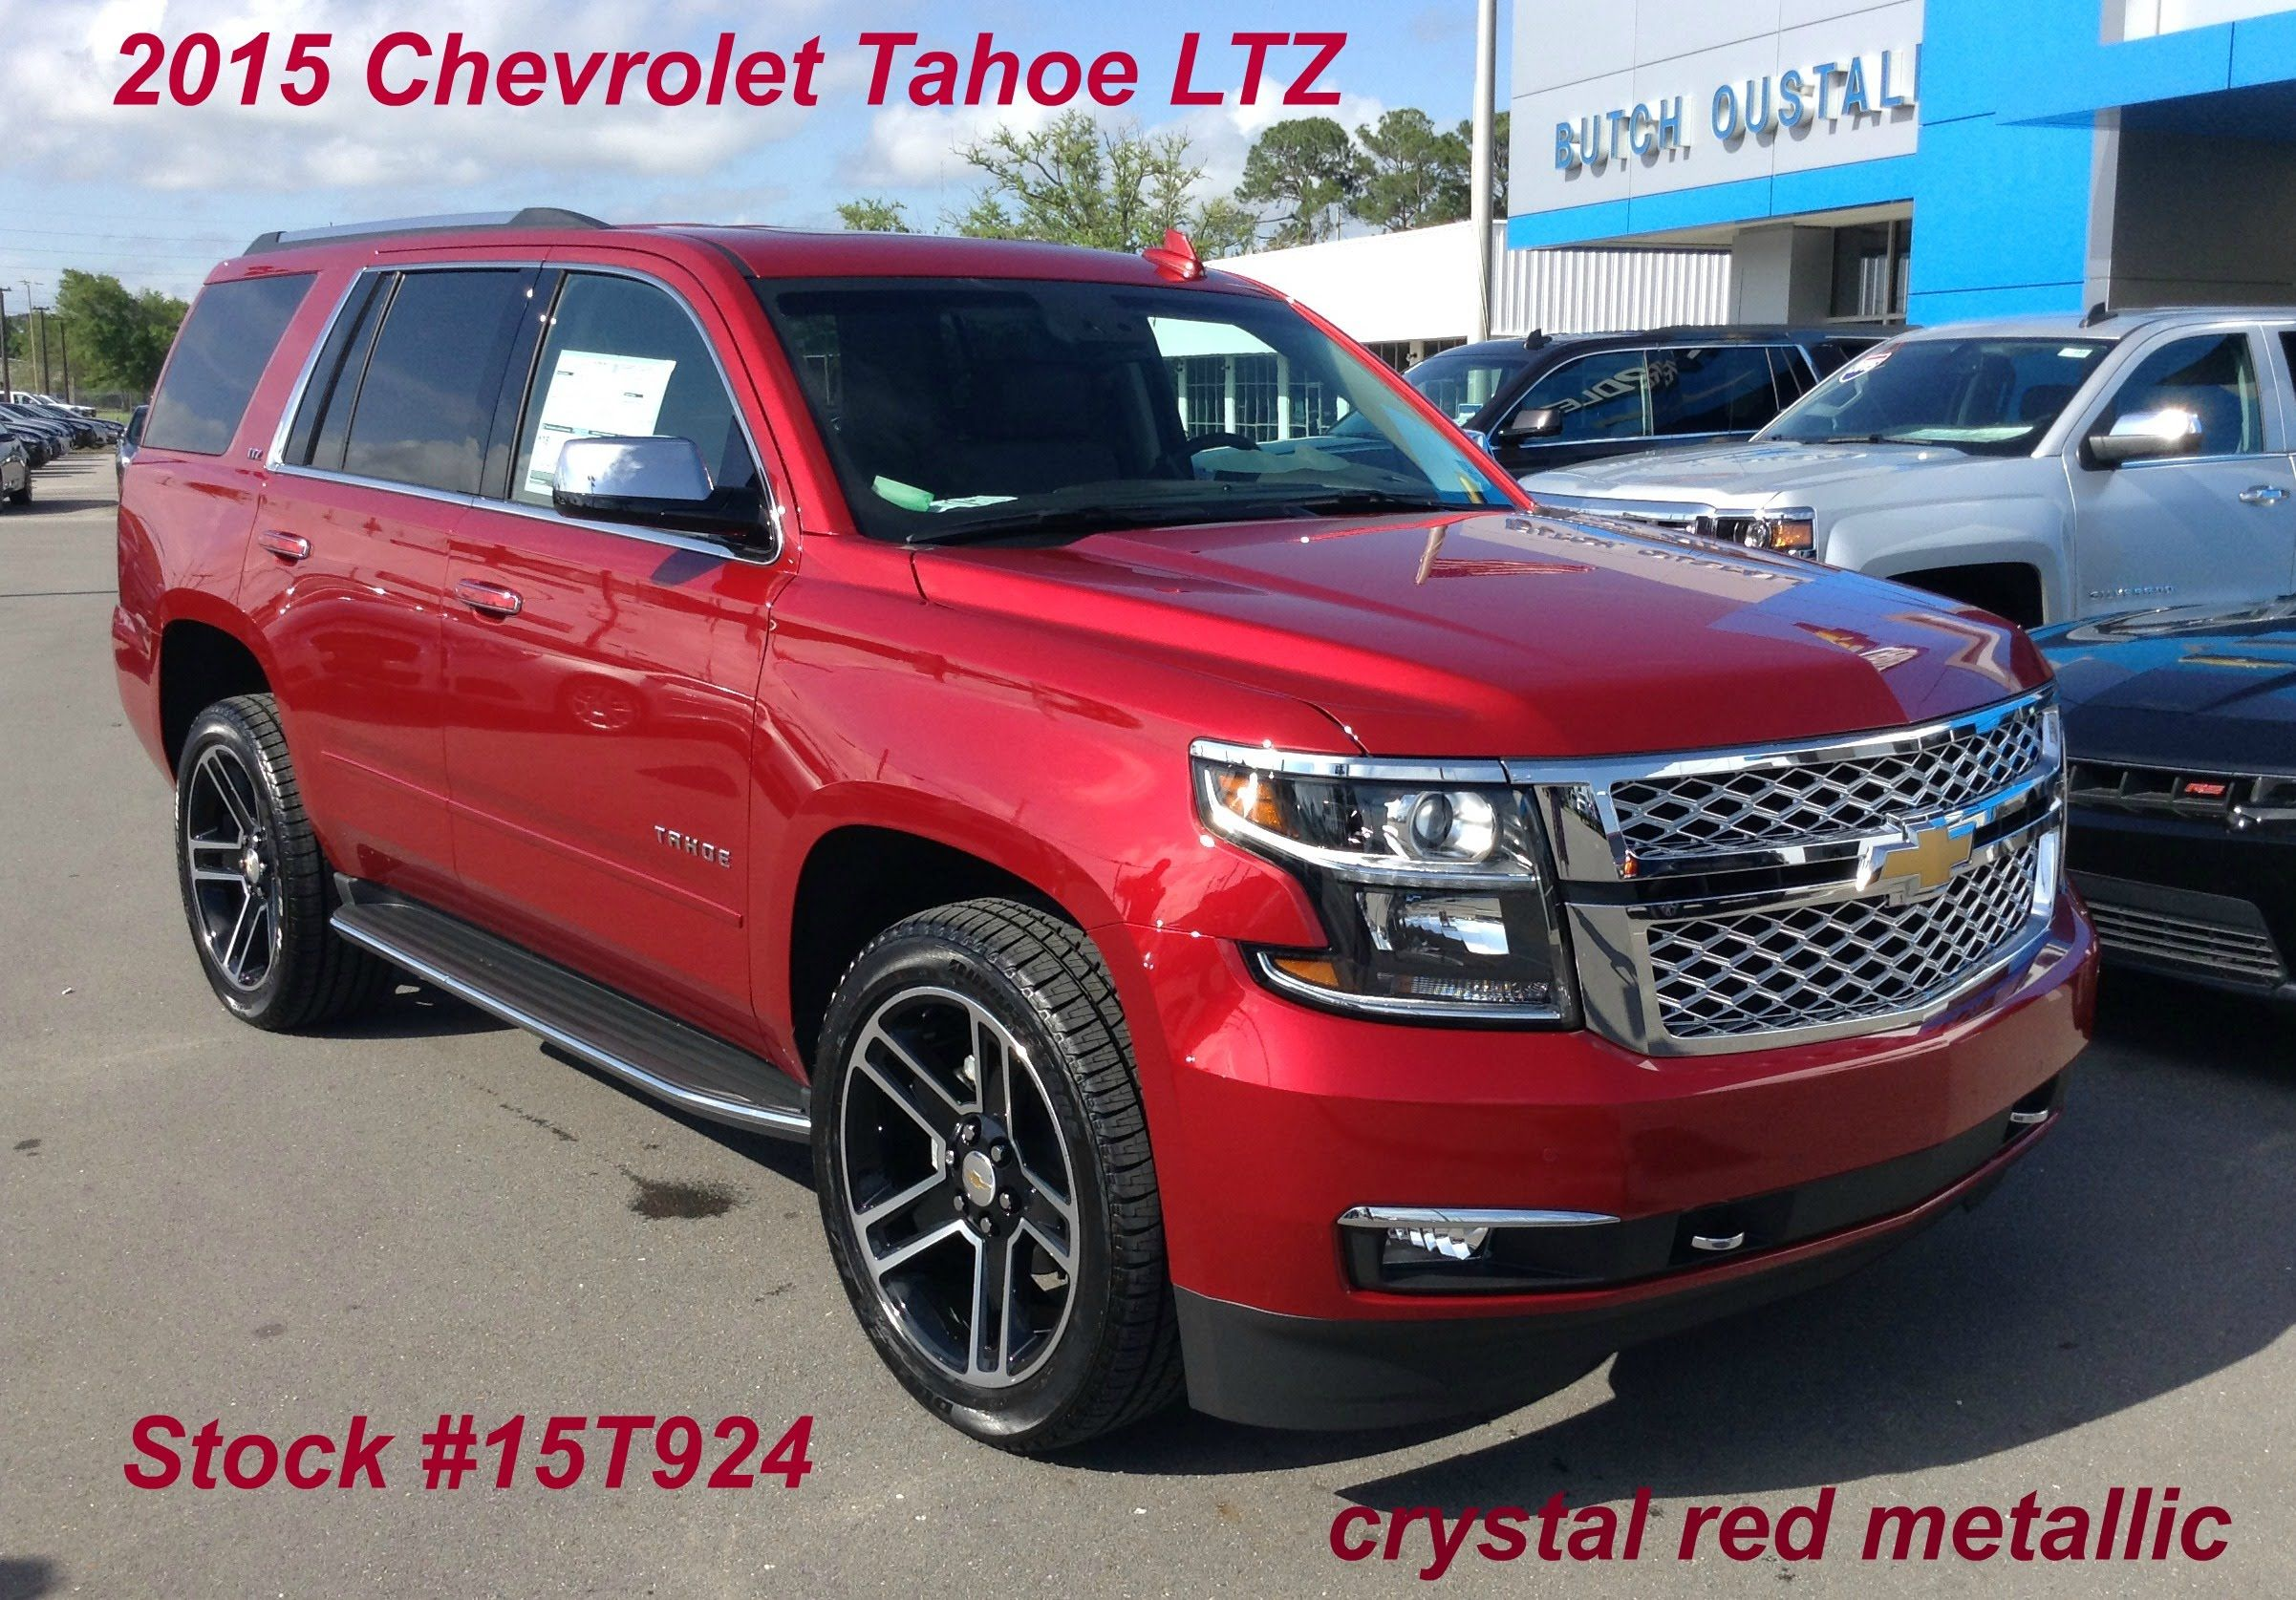 2015 Chevrolet Tahoe LTZ in crystal red metallic- Stock #15T924 | New Chevrolet Vehicles | 2015 ...